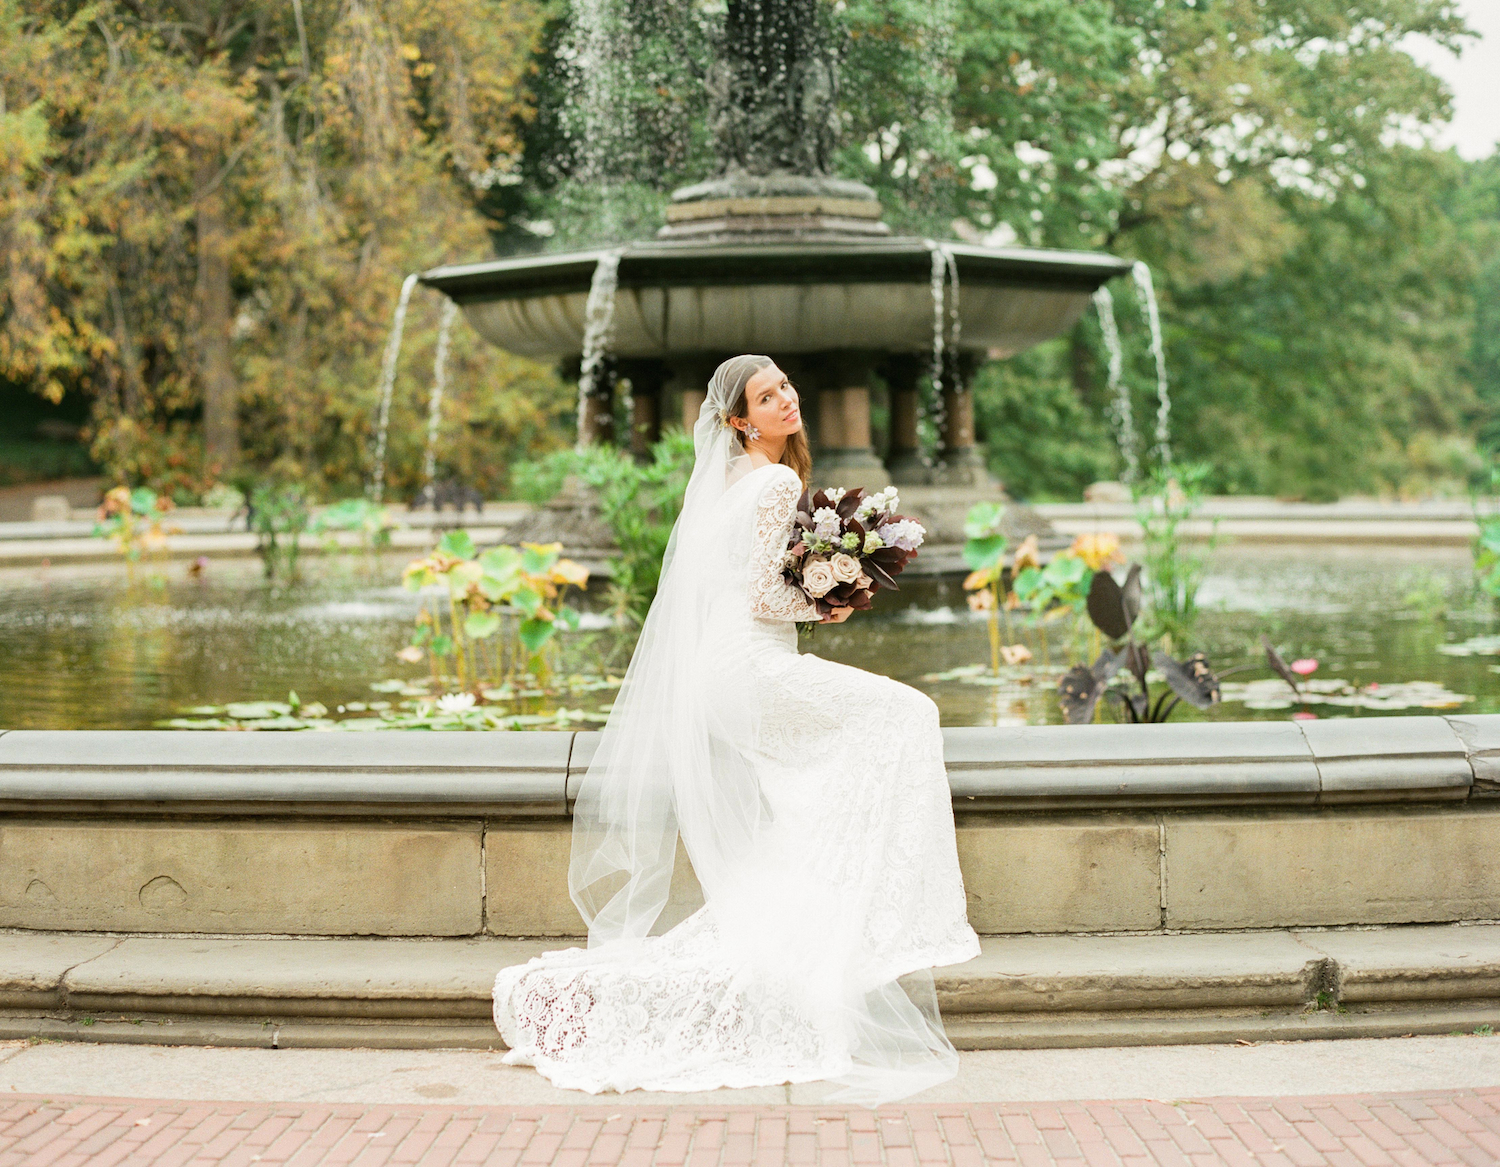 The Flower Bride- NYC Shoot- Lindsay Madden Photography-35 Full Aperture Floral copy.jpg